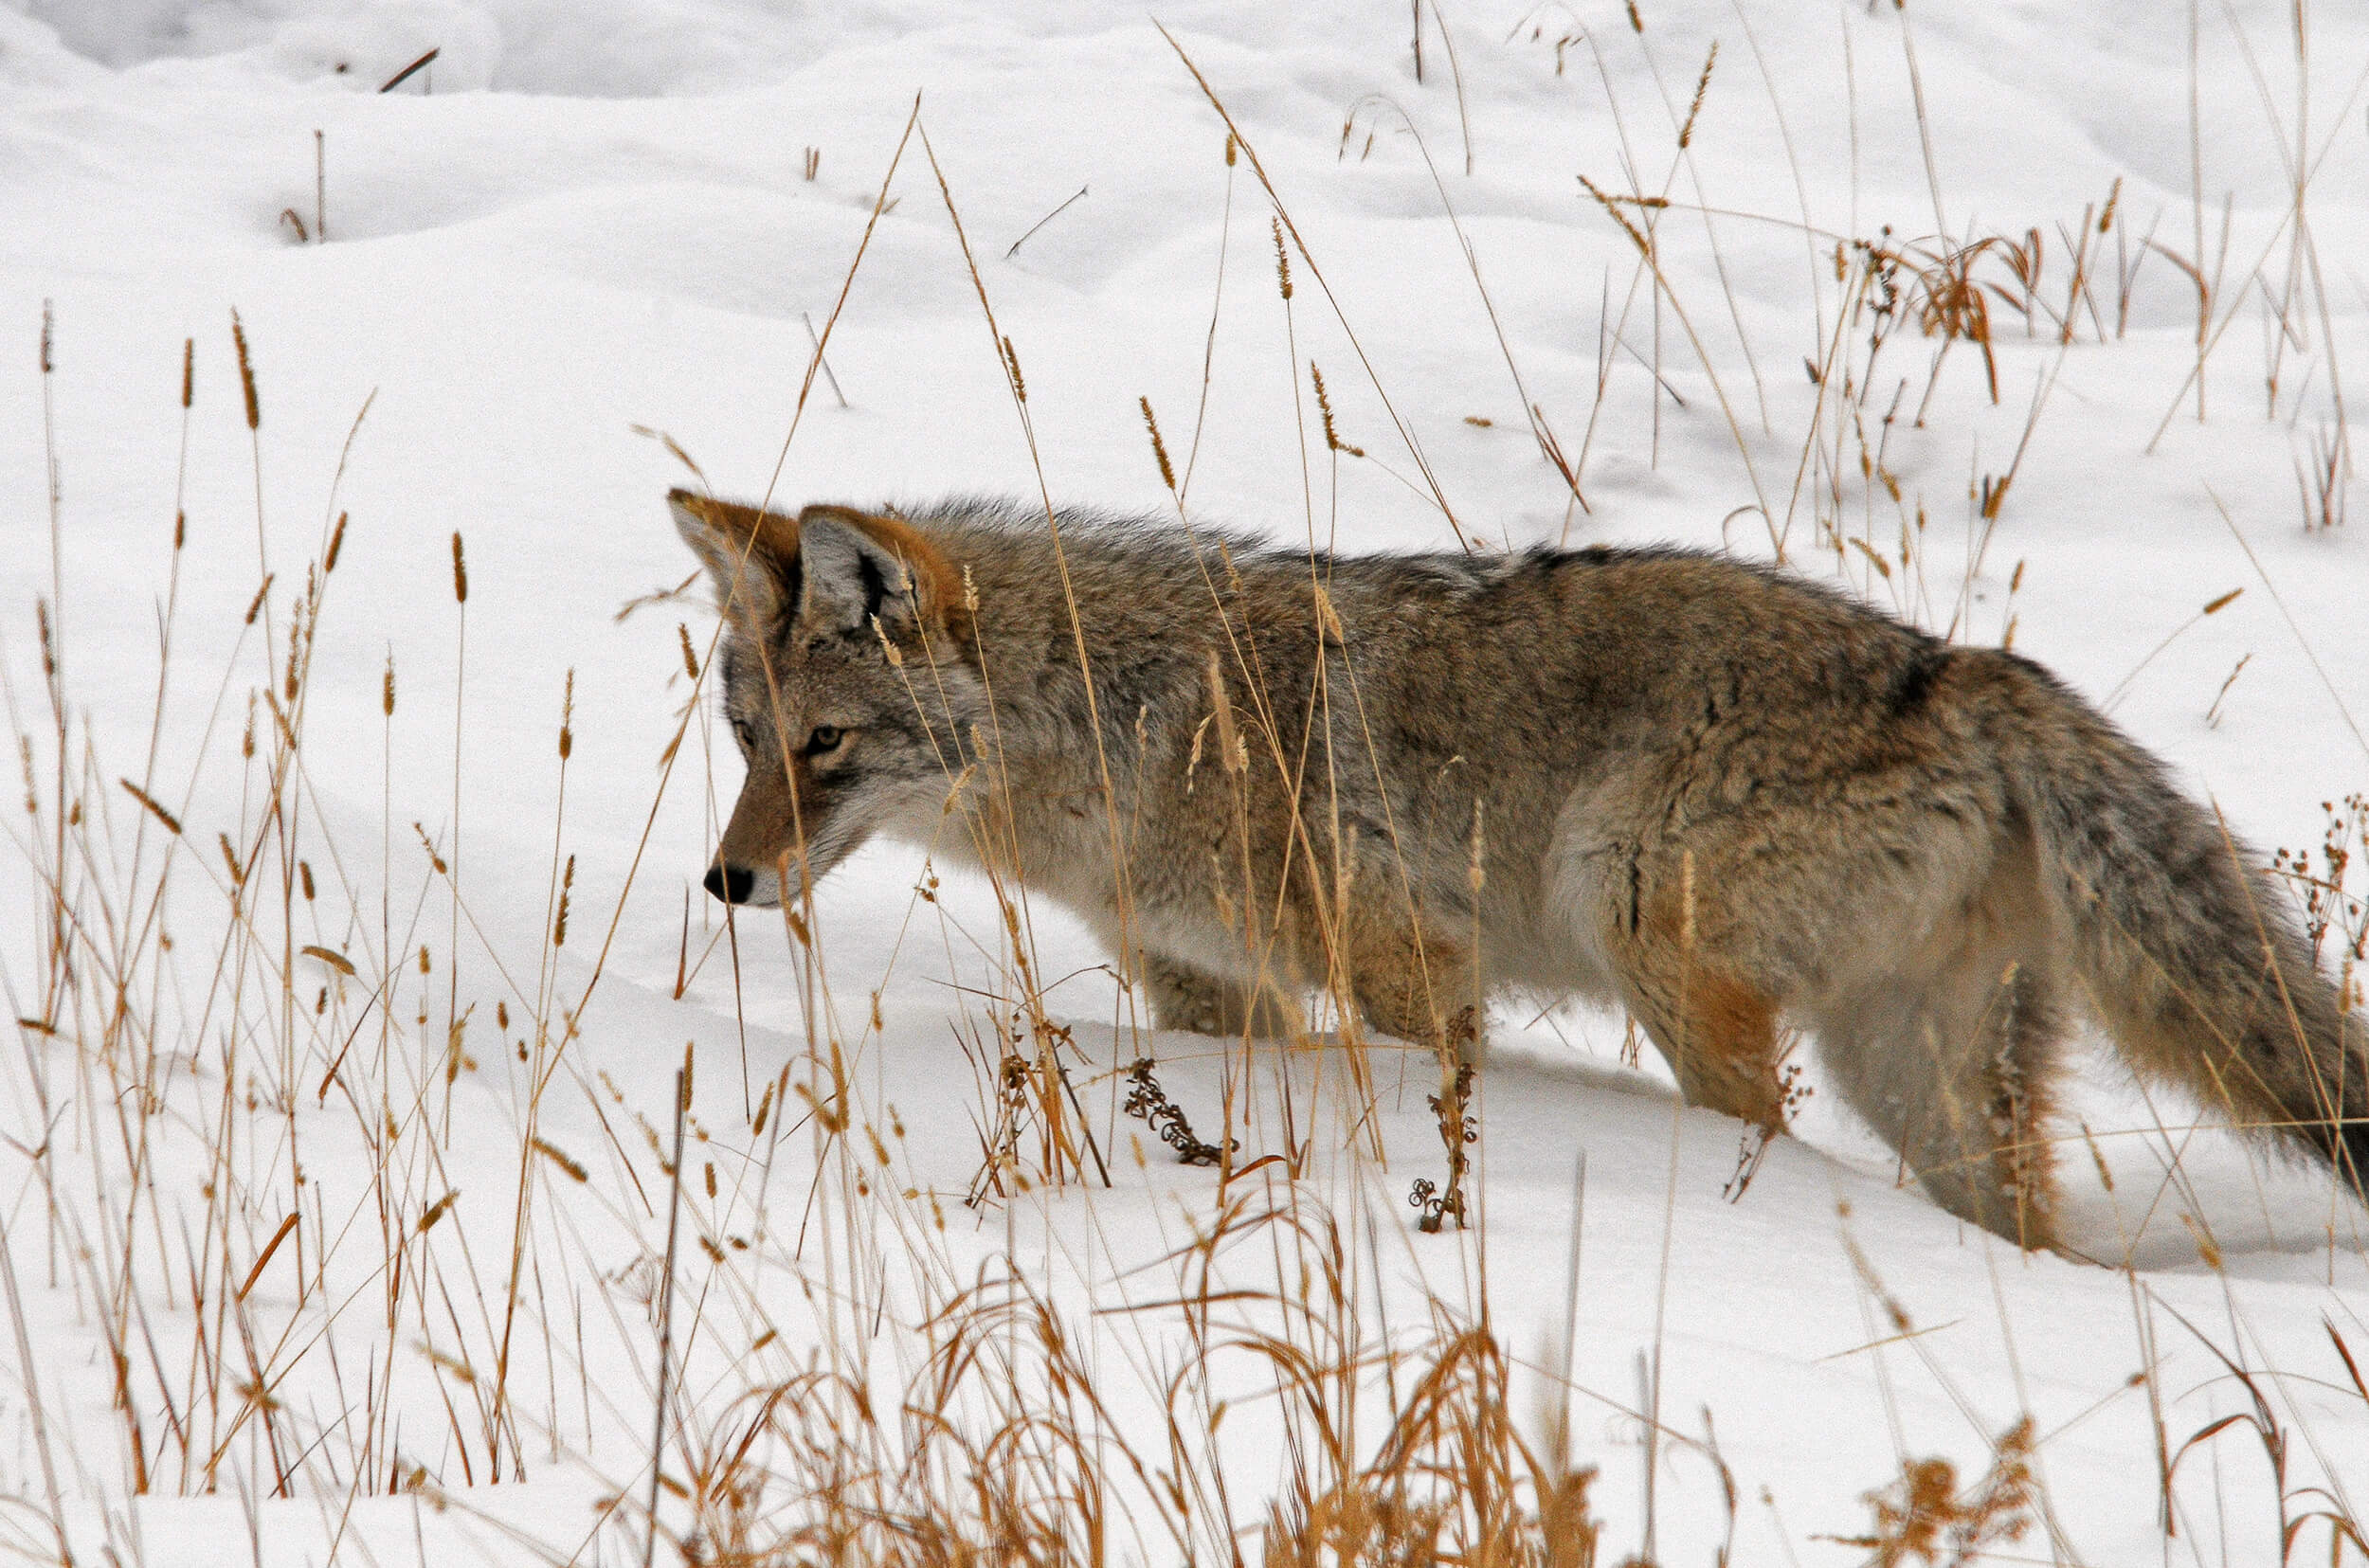 Coyote in a snowy field